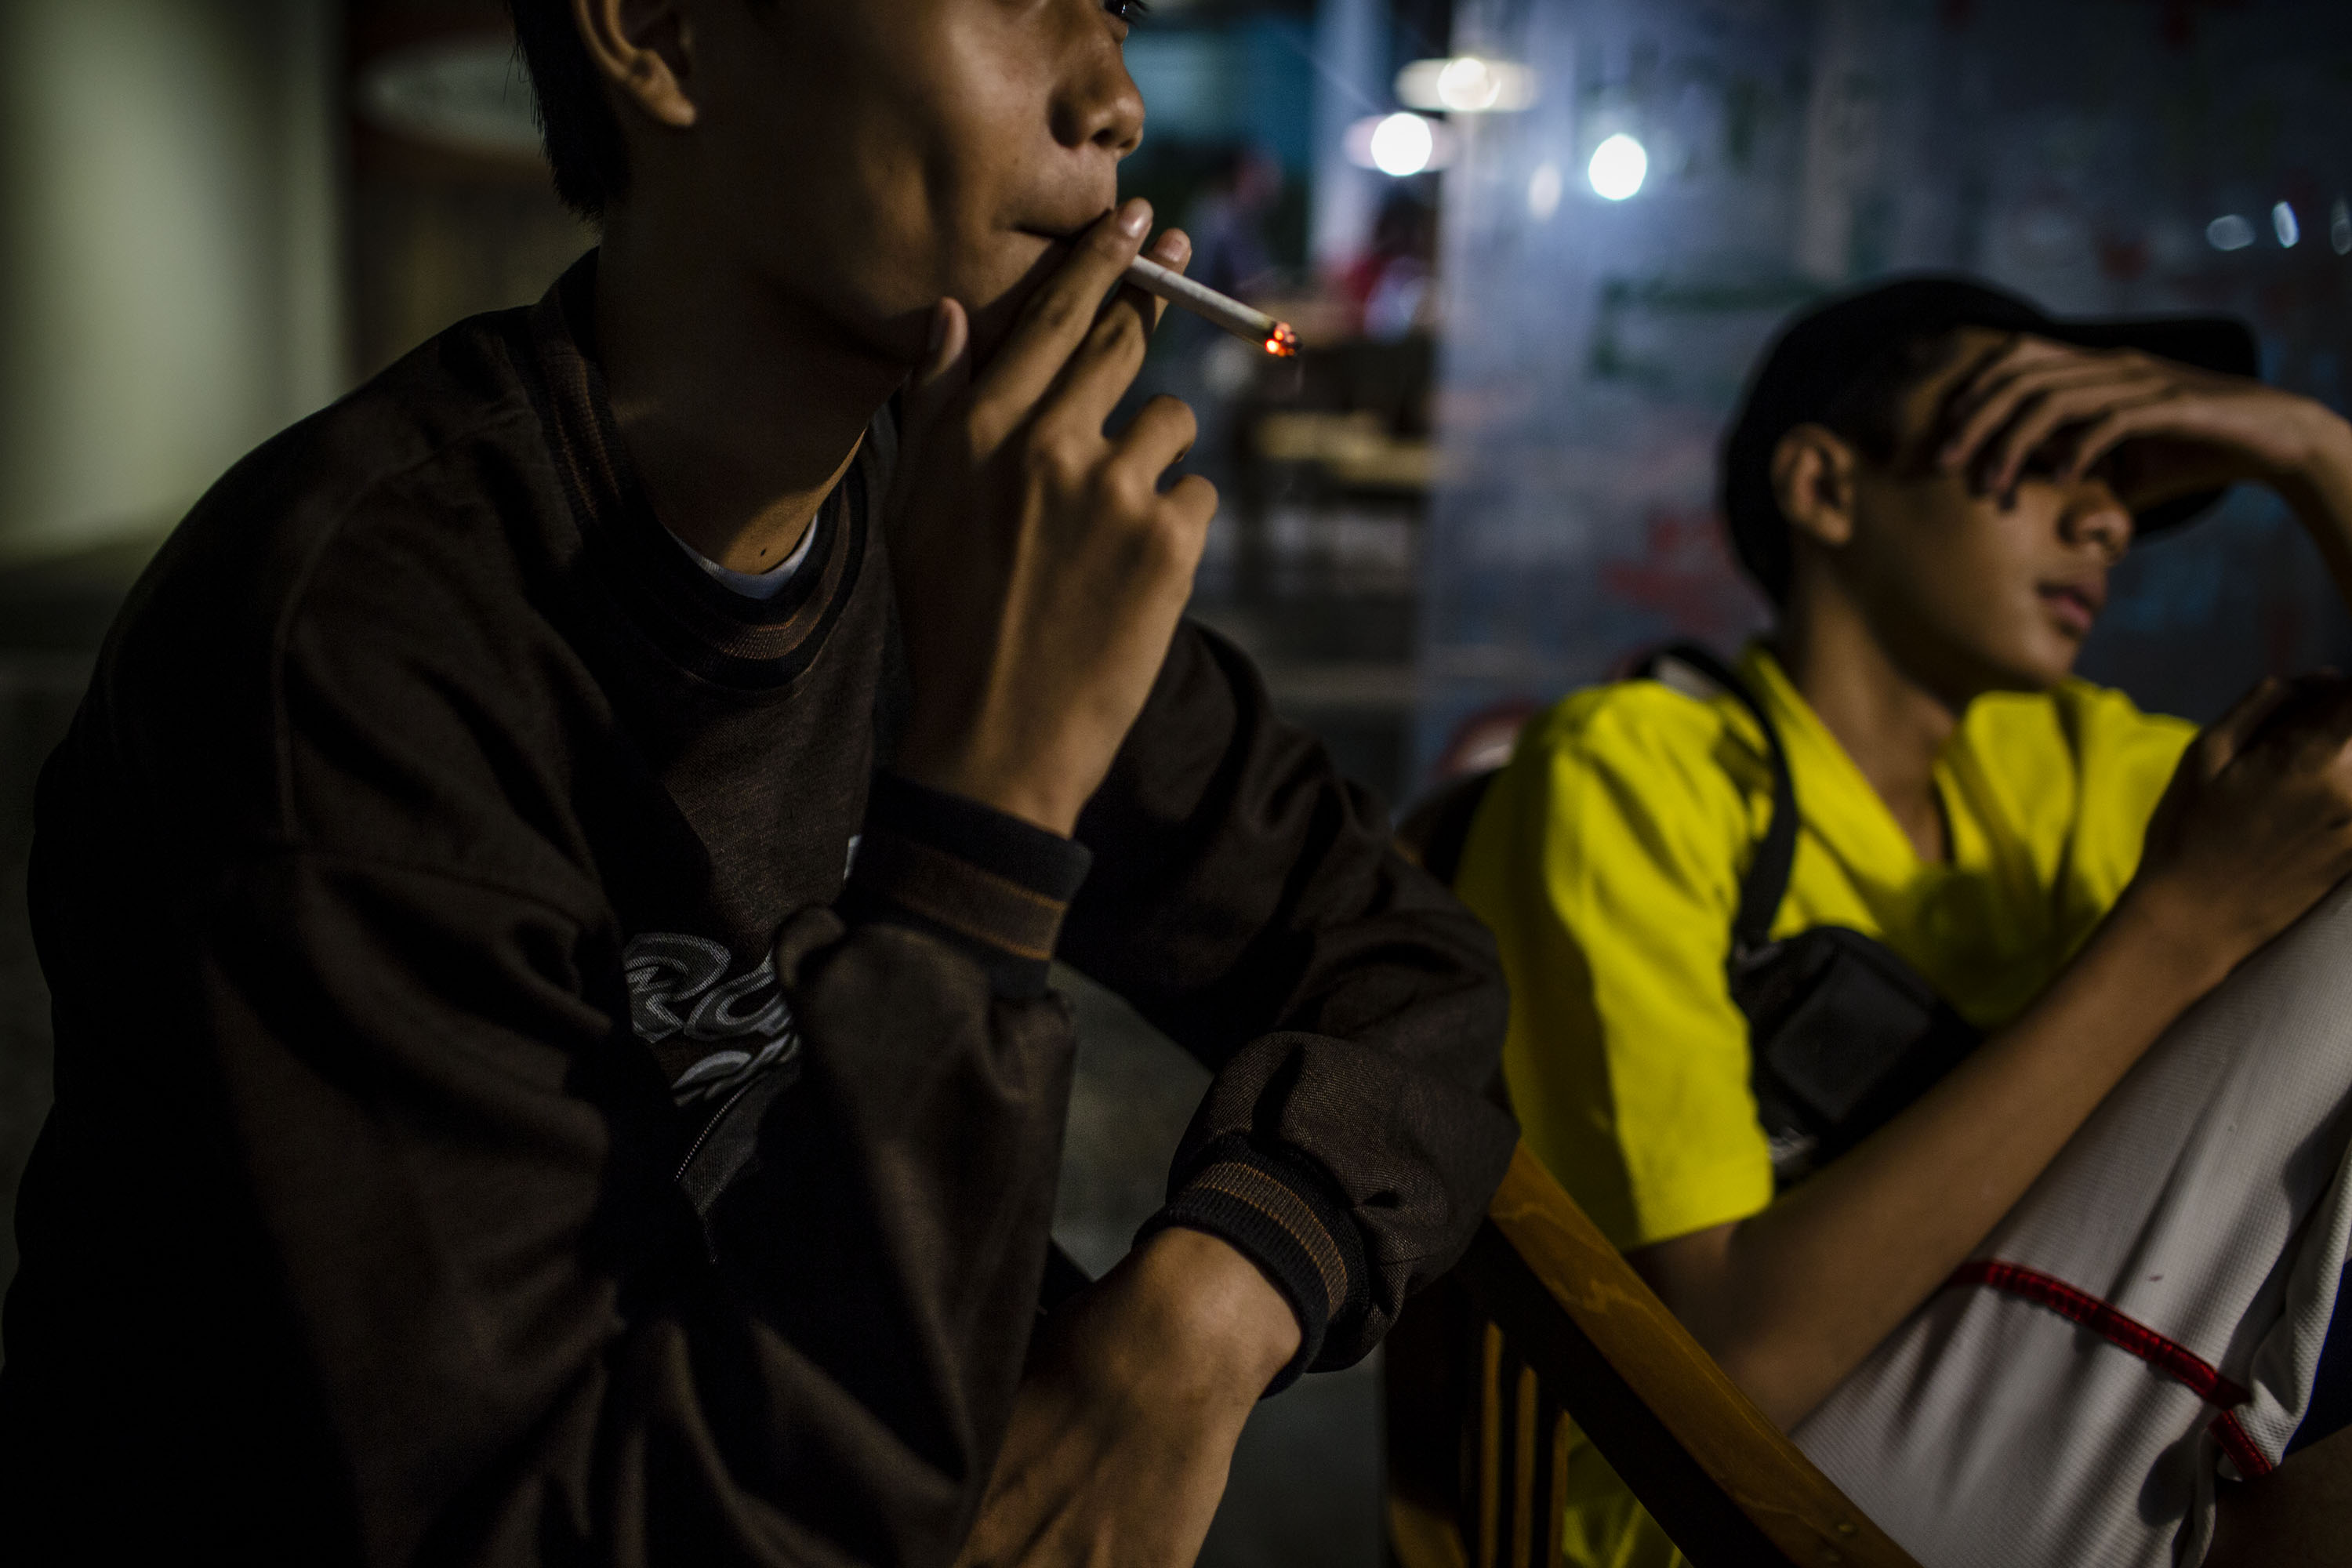 A boy smokes at a coffee shop at night with his friends on March 7, 2017 in Yogyakarta, Indonesia.